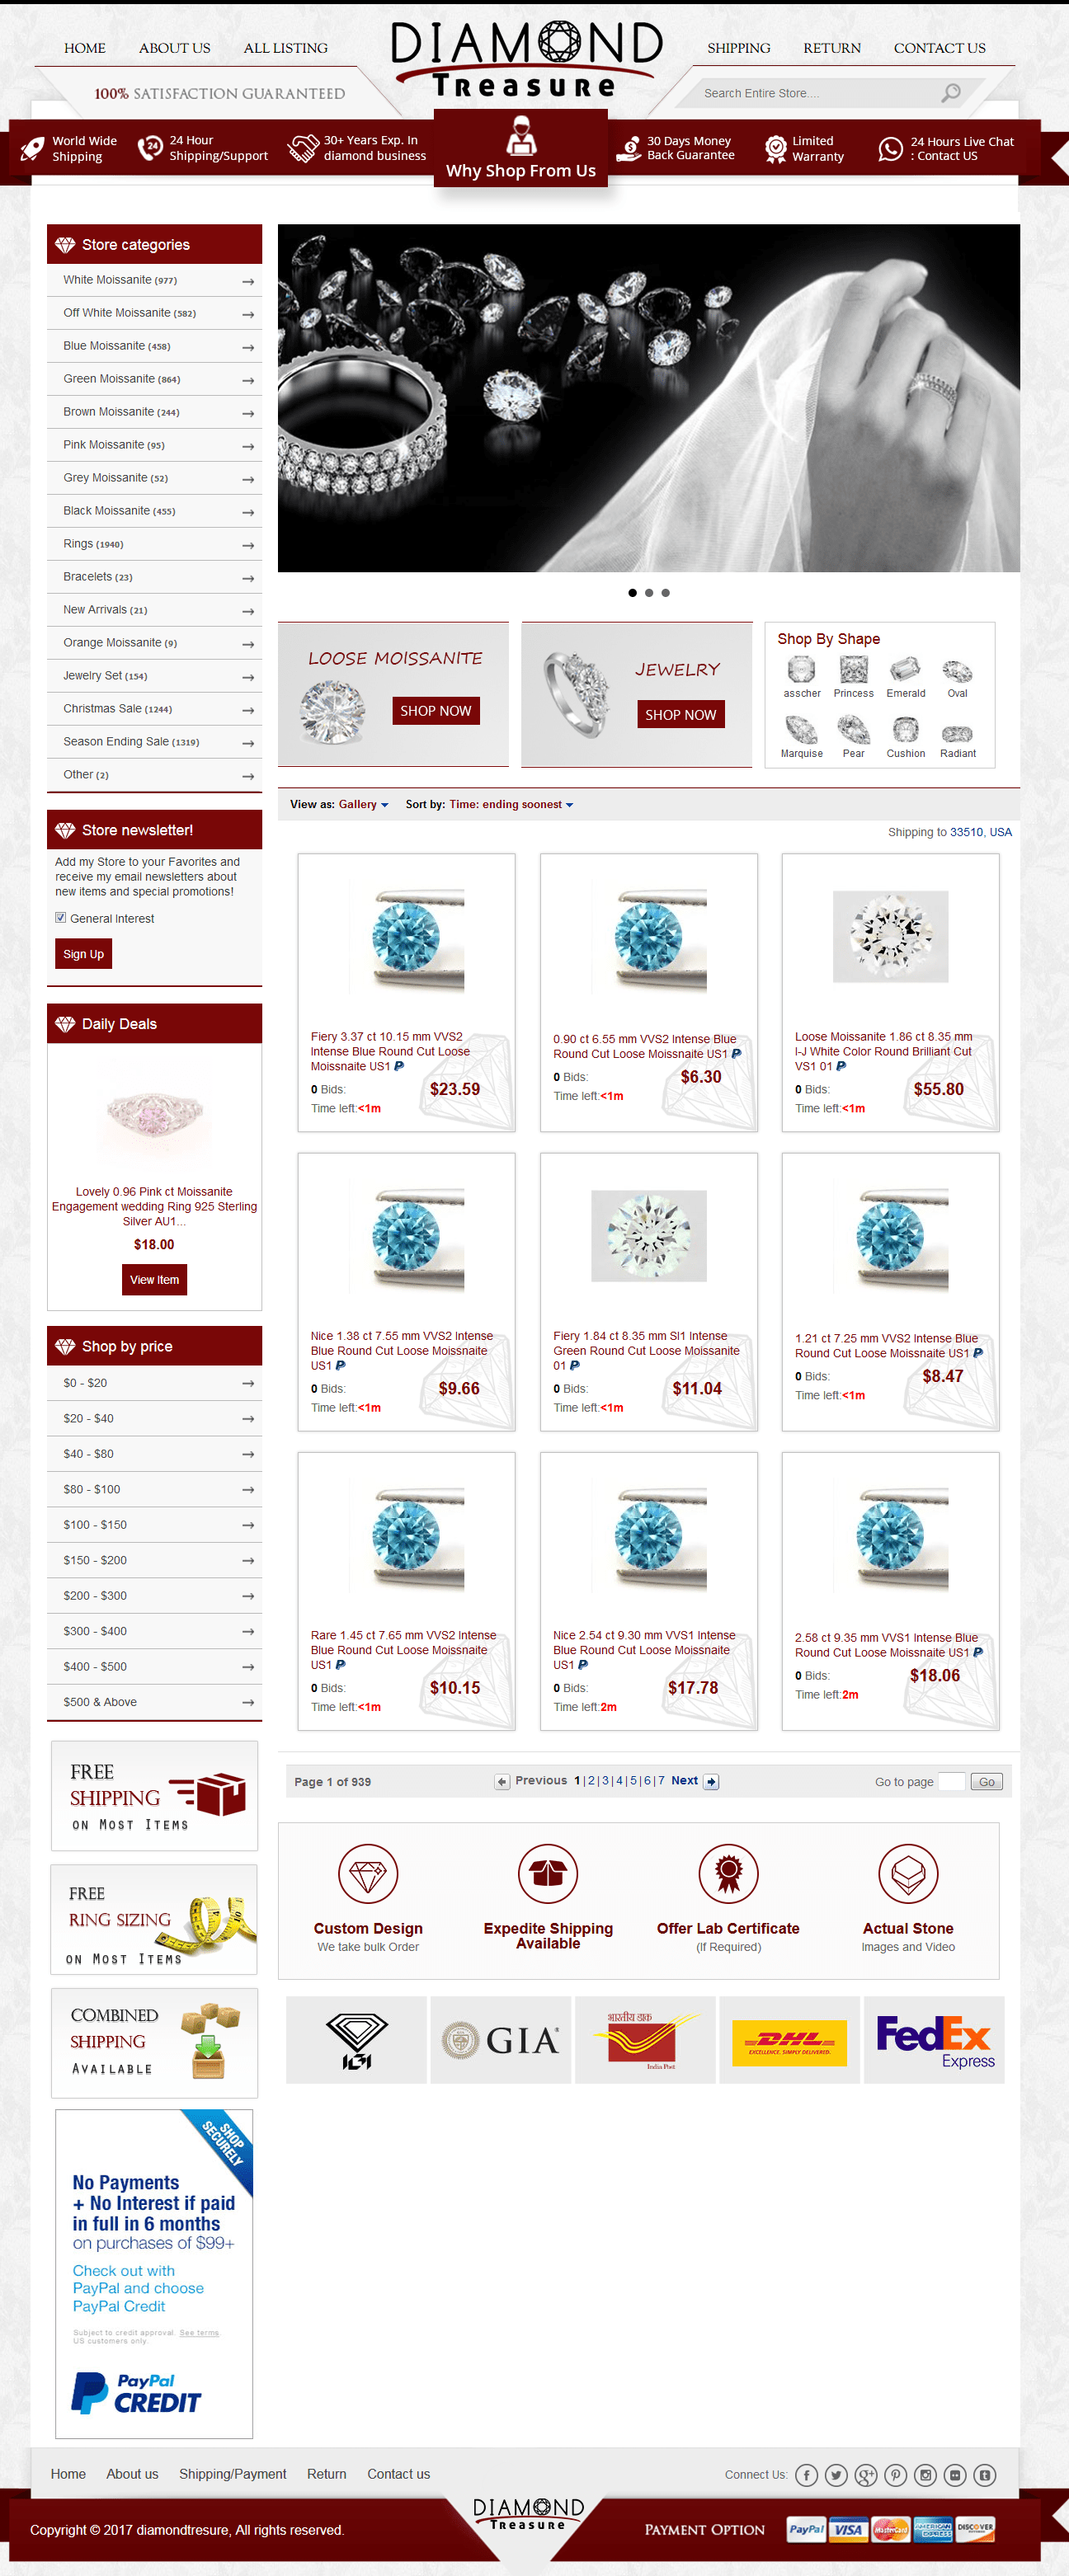 Diamond Treasure- Custom eBay Shop , Listing Template and Valigara Integration and Set-up